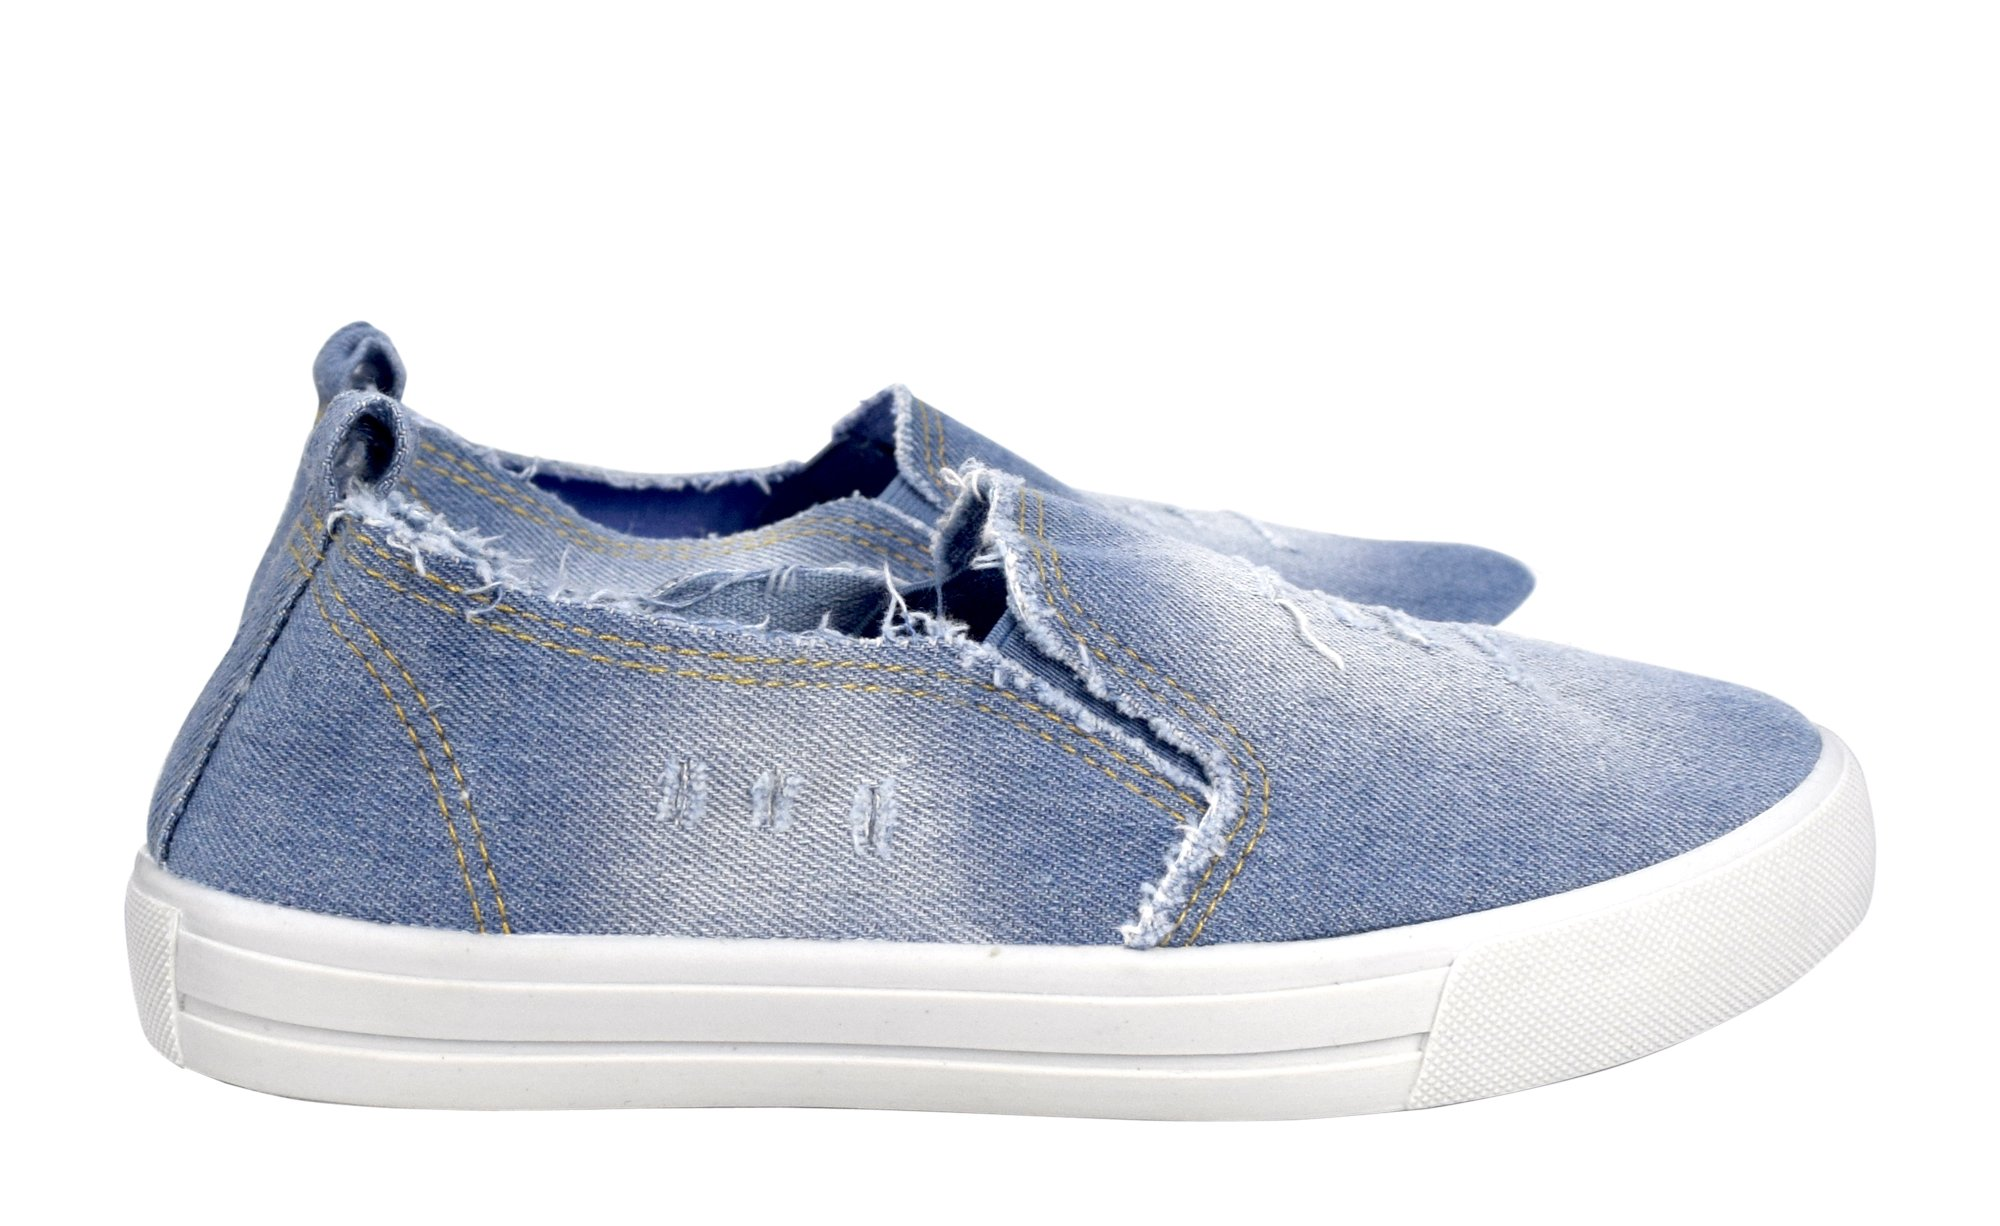 Peach Couture Womens Fashion Distressed Denim Casual Shoes Slip On Sneakers (L Blue 8)